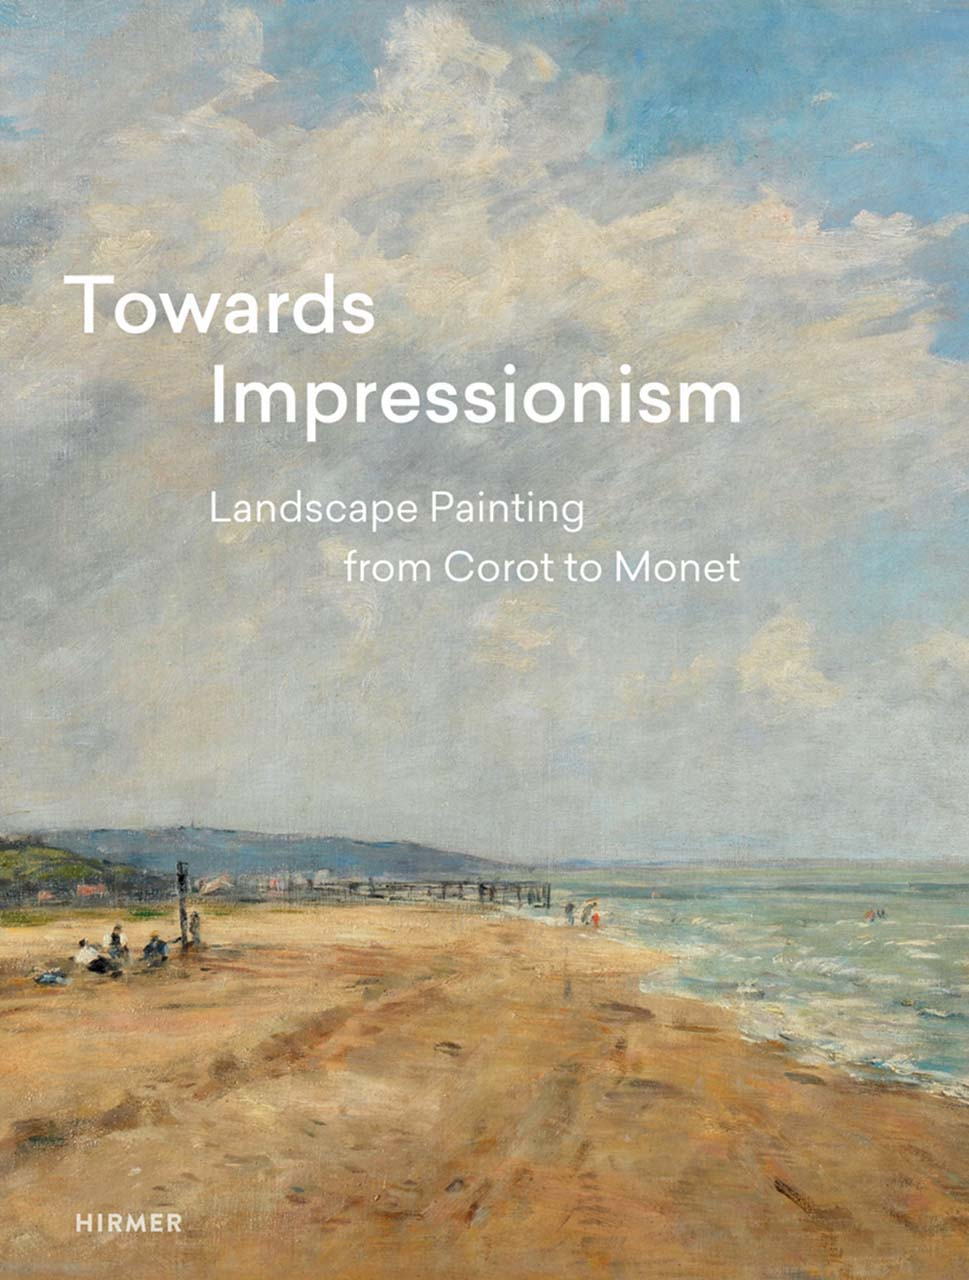 Towards Impressionism